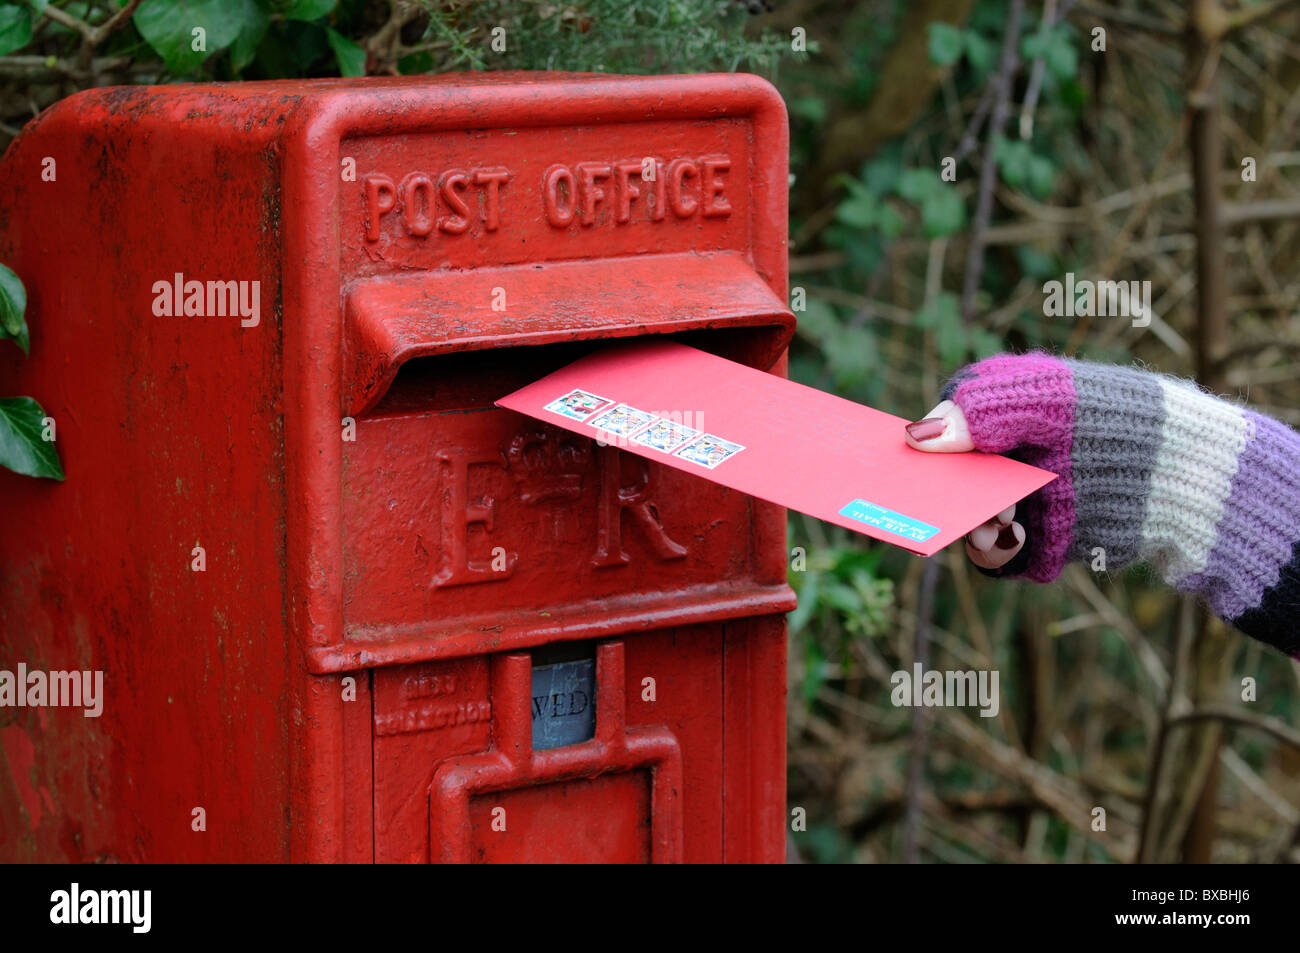 Woman posting Christmas greetings cards in a Royal Mail letterbox - Stock Image